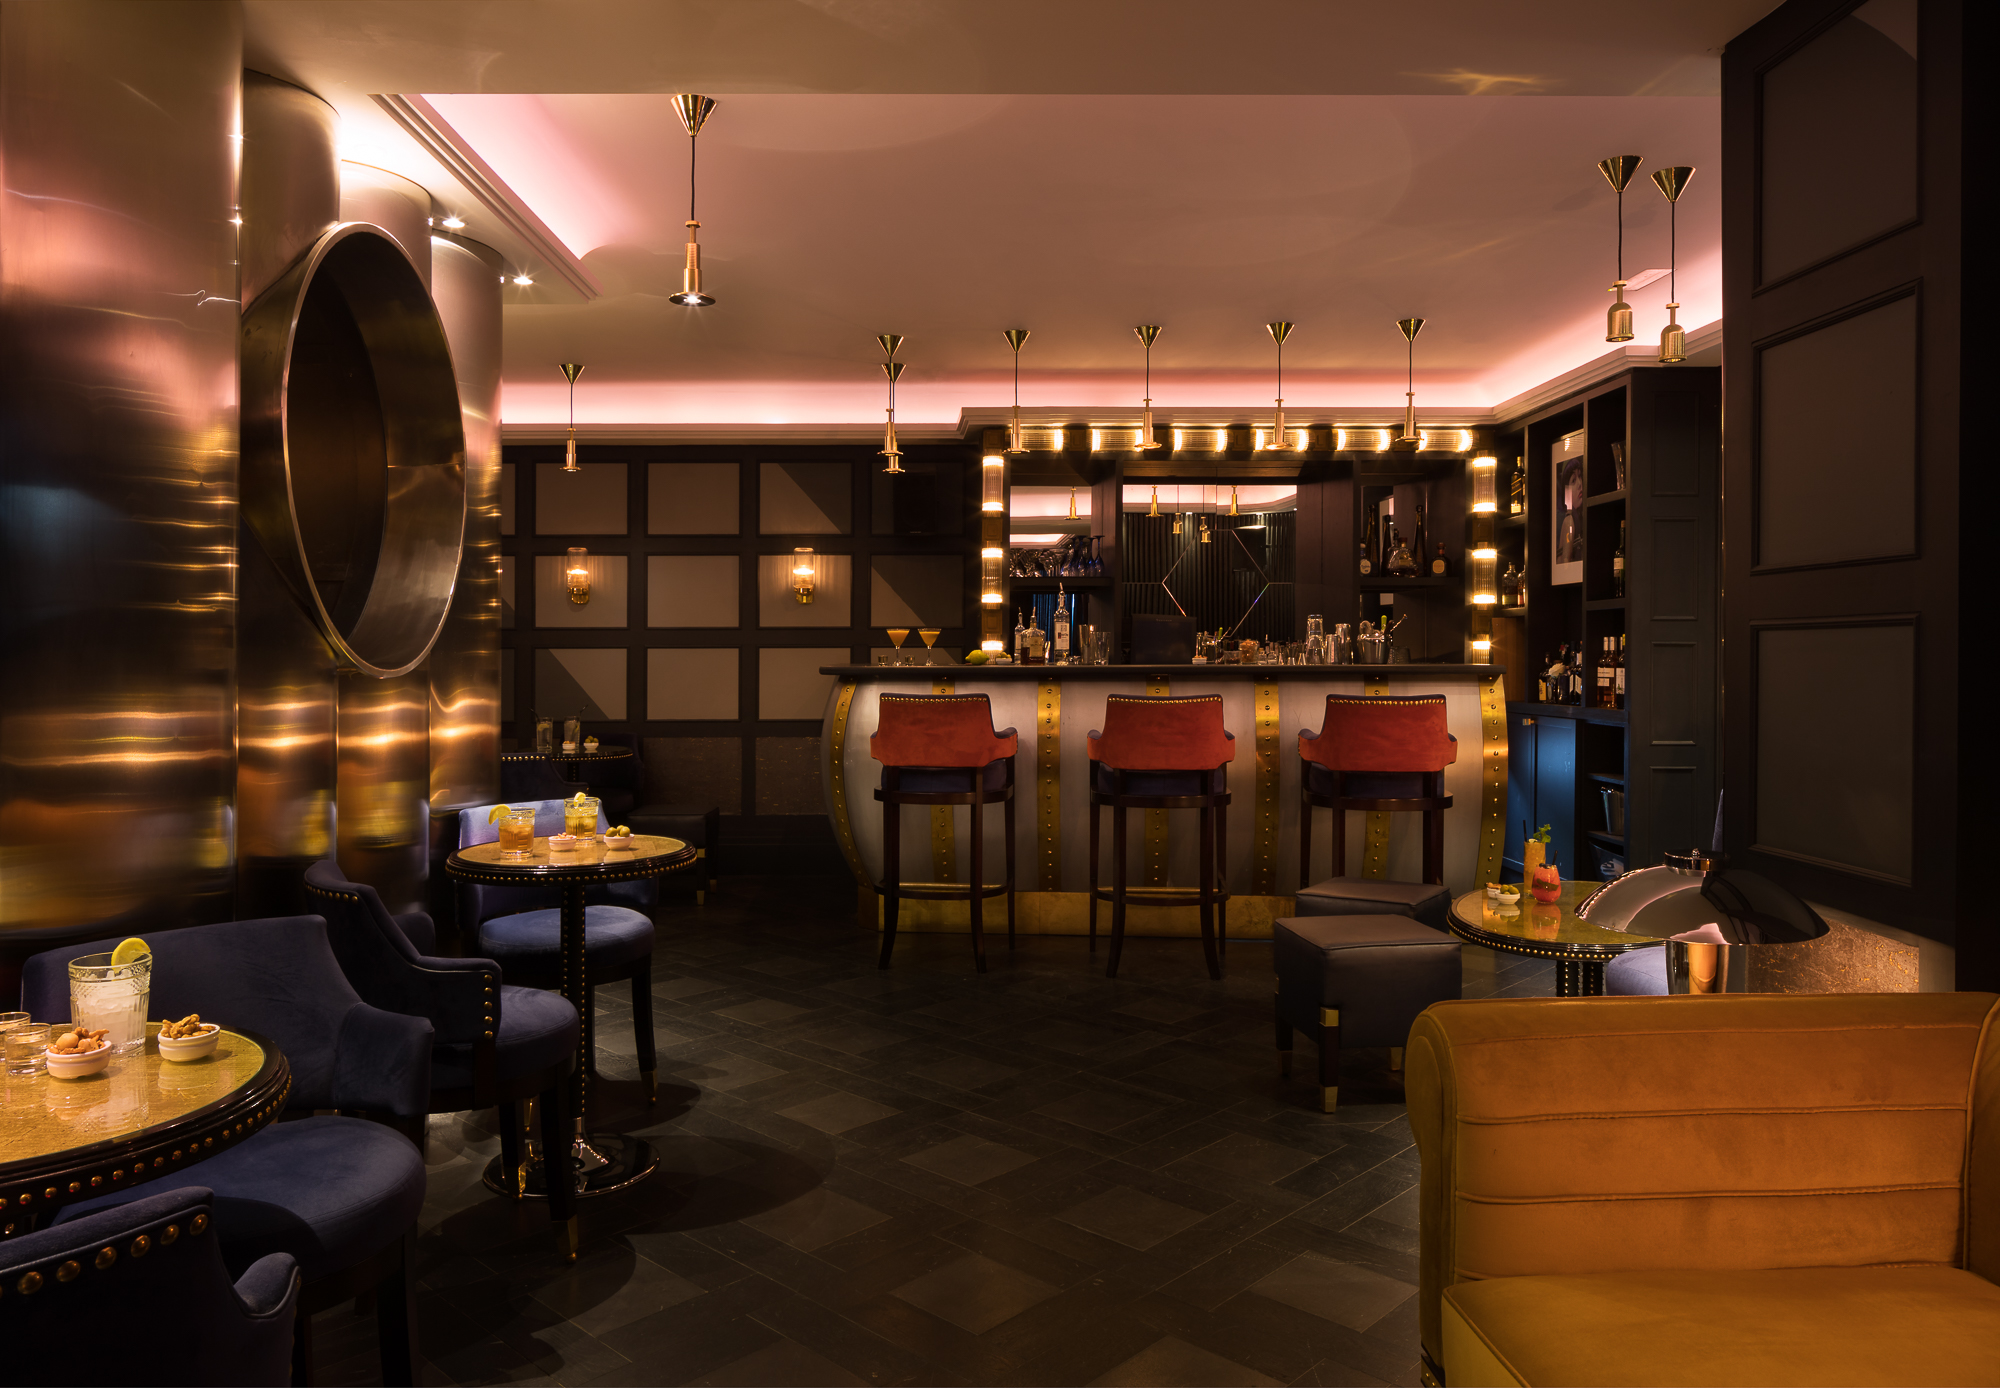 Paul Craig, Interior Photographer, Hotel Photography, Commercial Property Dining Food Bar